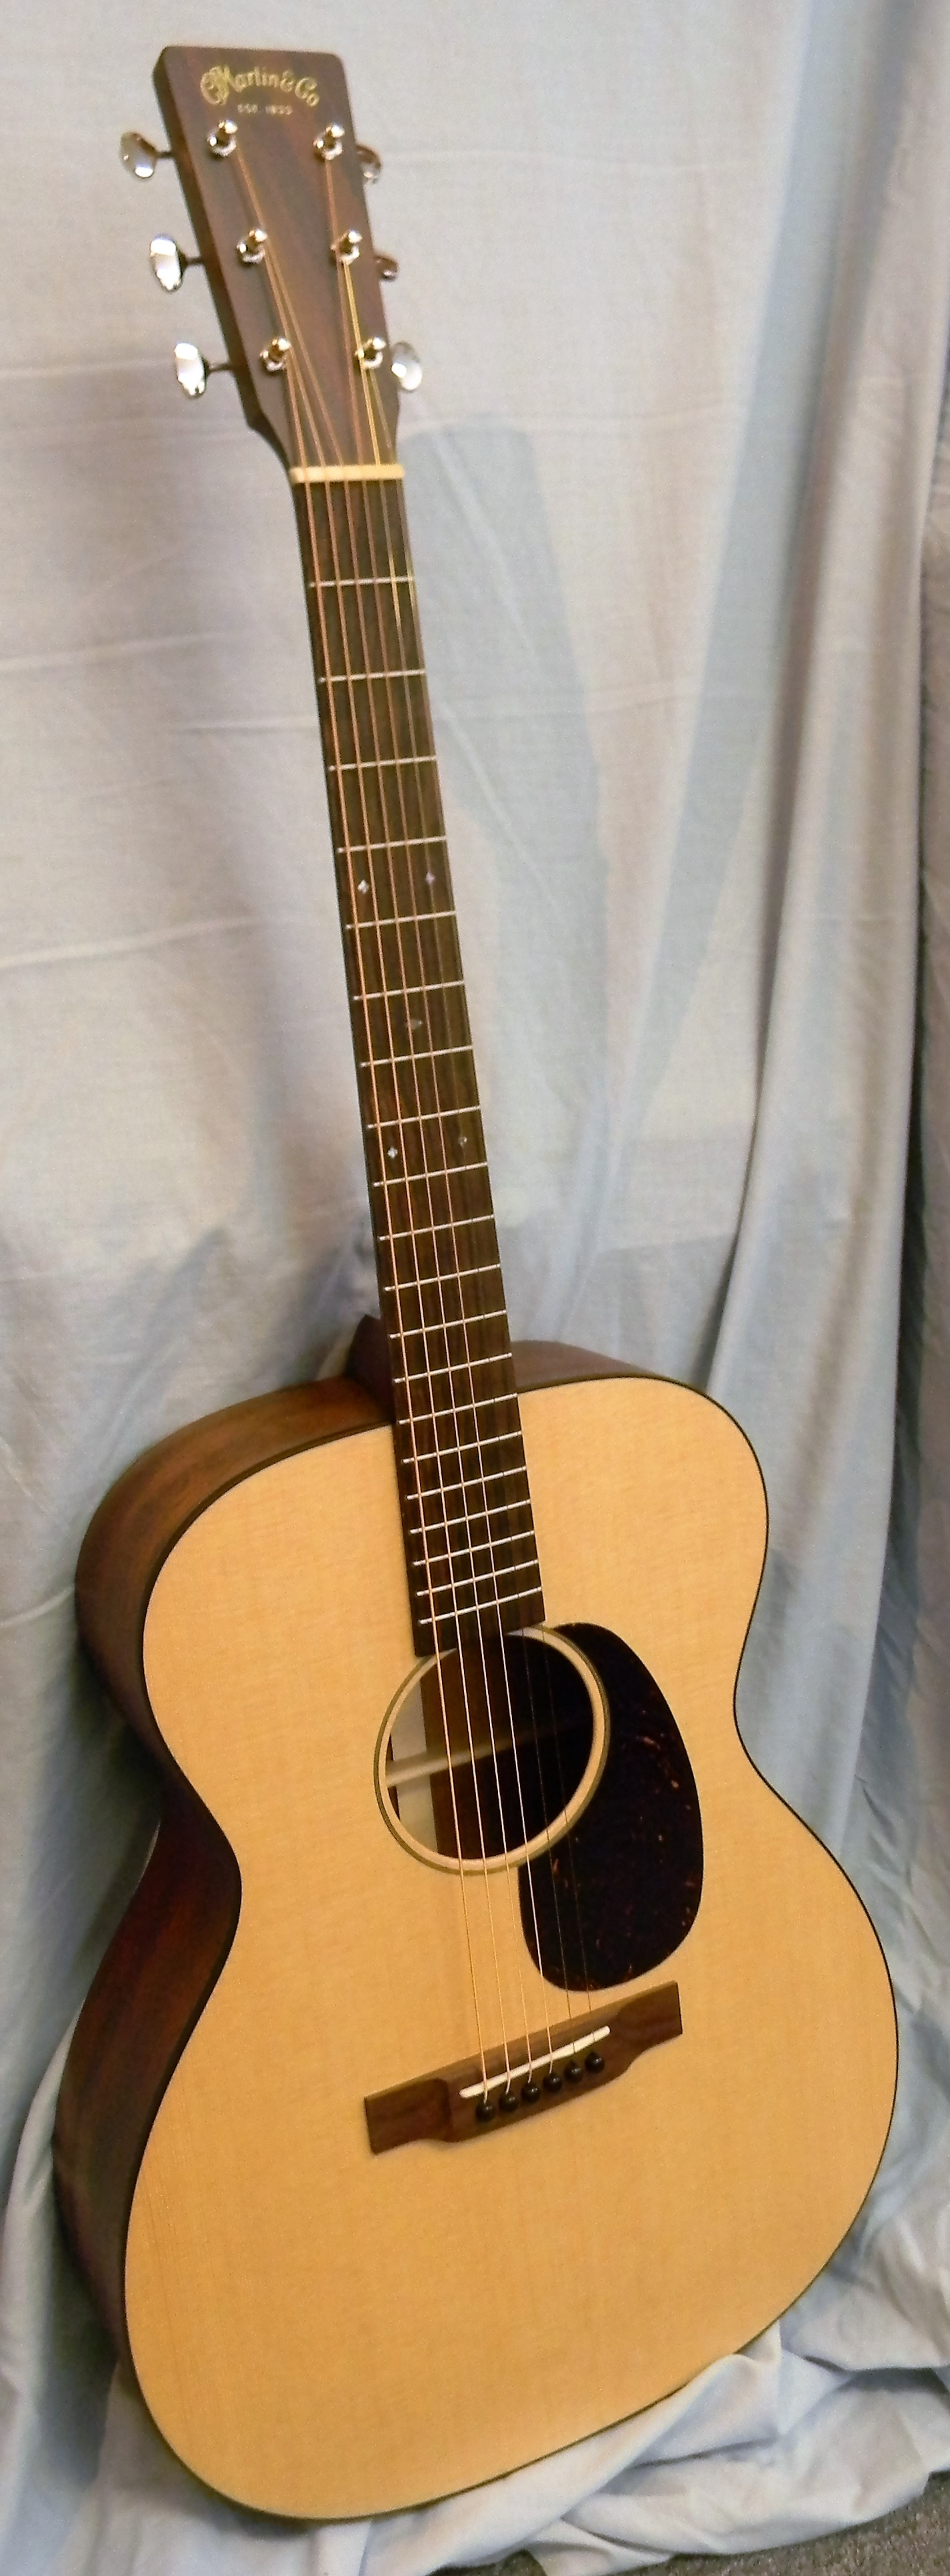 000-15 Special. Limited run of 15 Series Guitar with solid Sitka spruce and mahogany. $1,459.00 We also have a D-15 Special arriving next week.